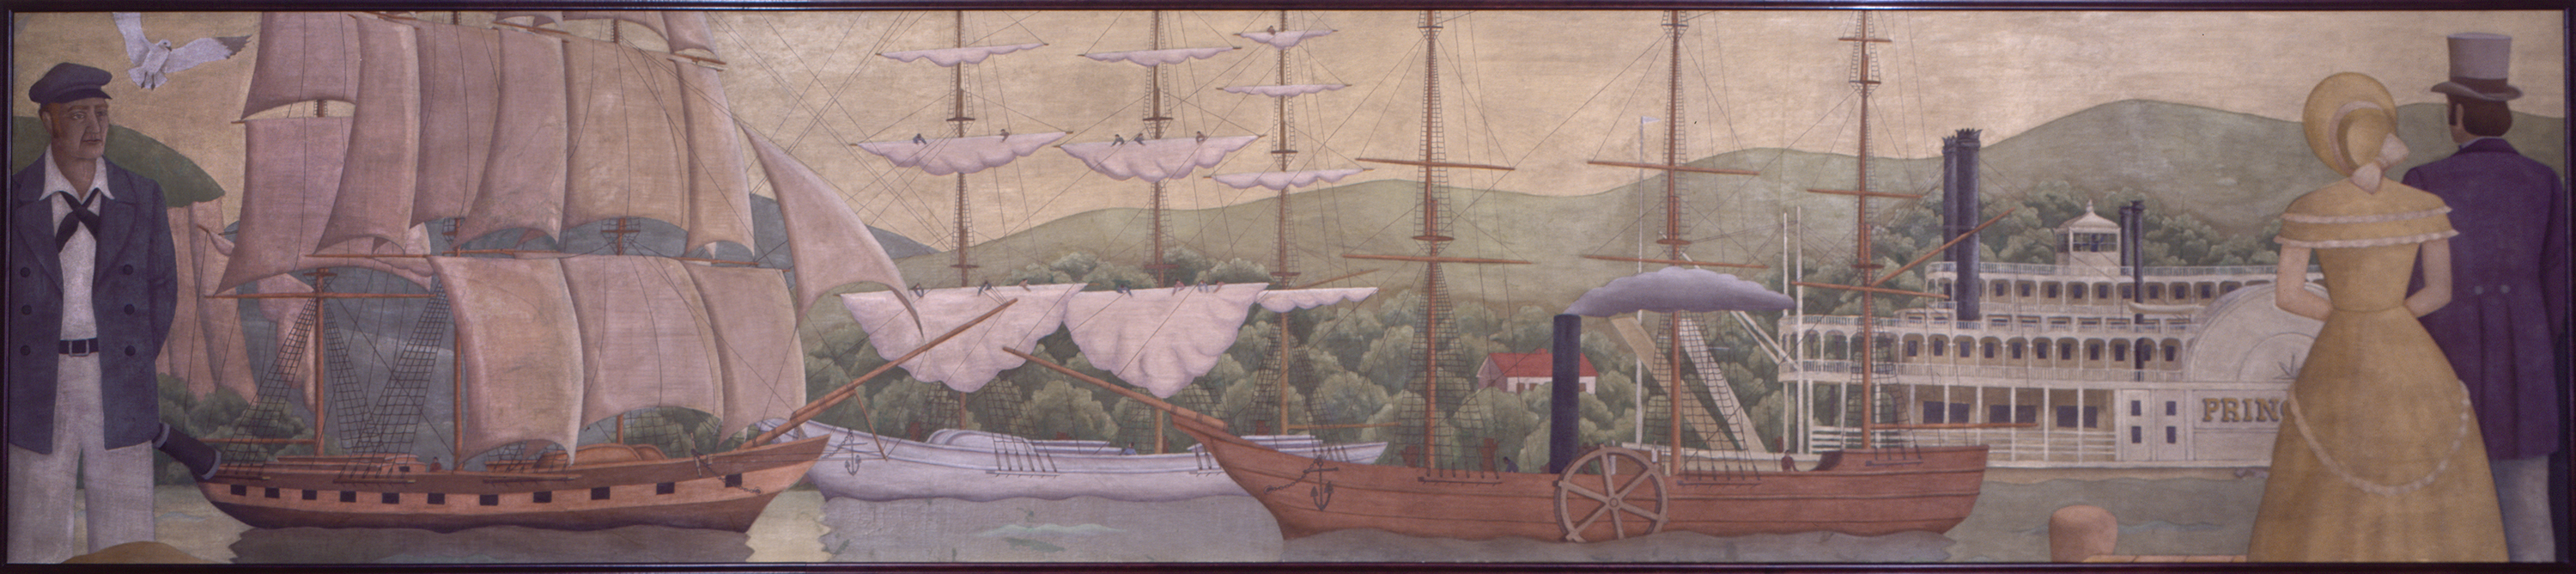 """""""History of Ships"""" by Gustaf Dalstrom, painted in 1936, depicts the history of shipbuilding from the days of sail to early modern steamships."""